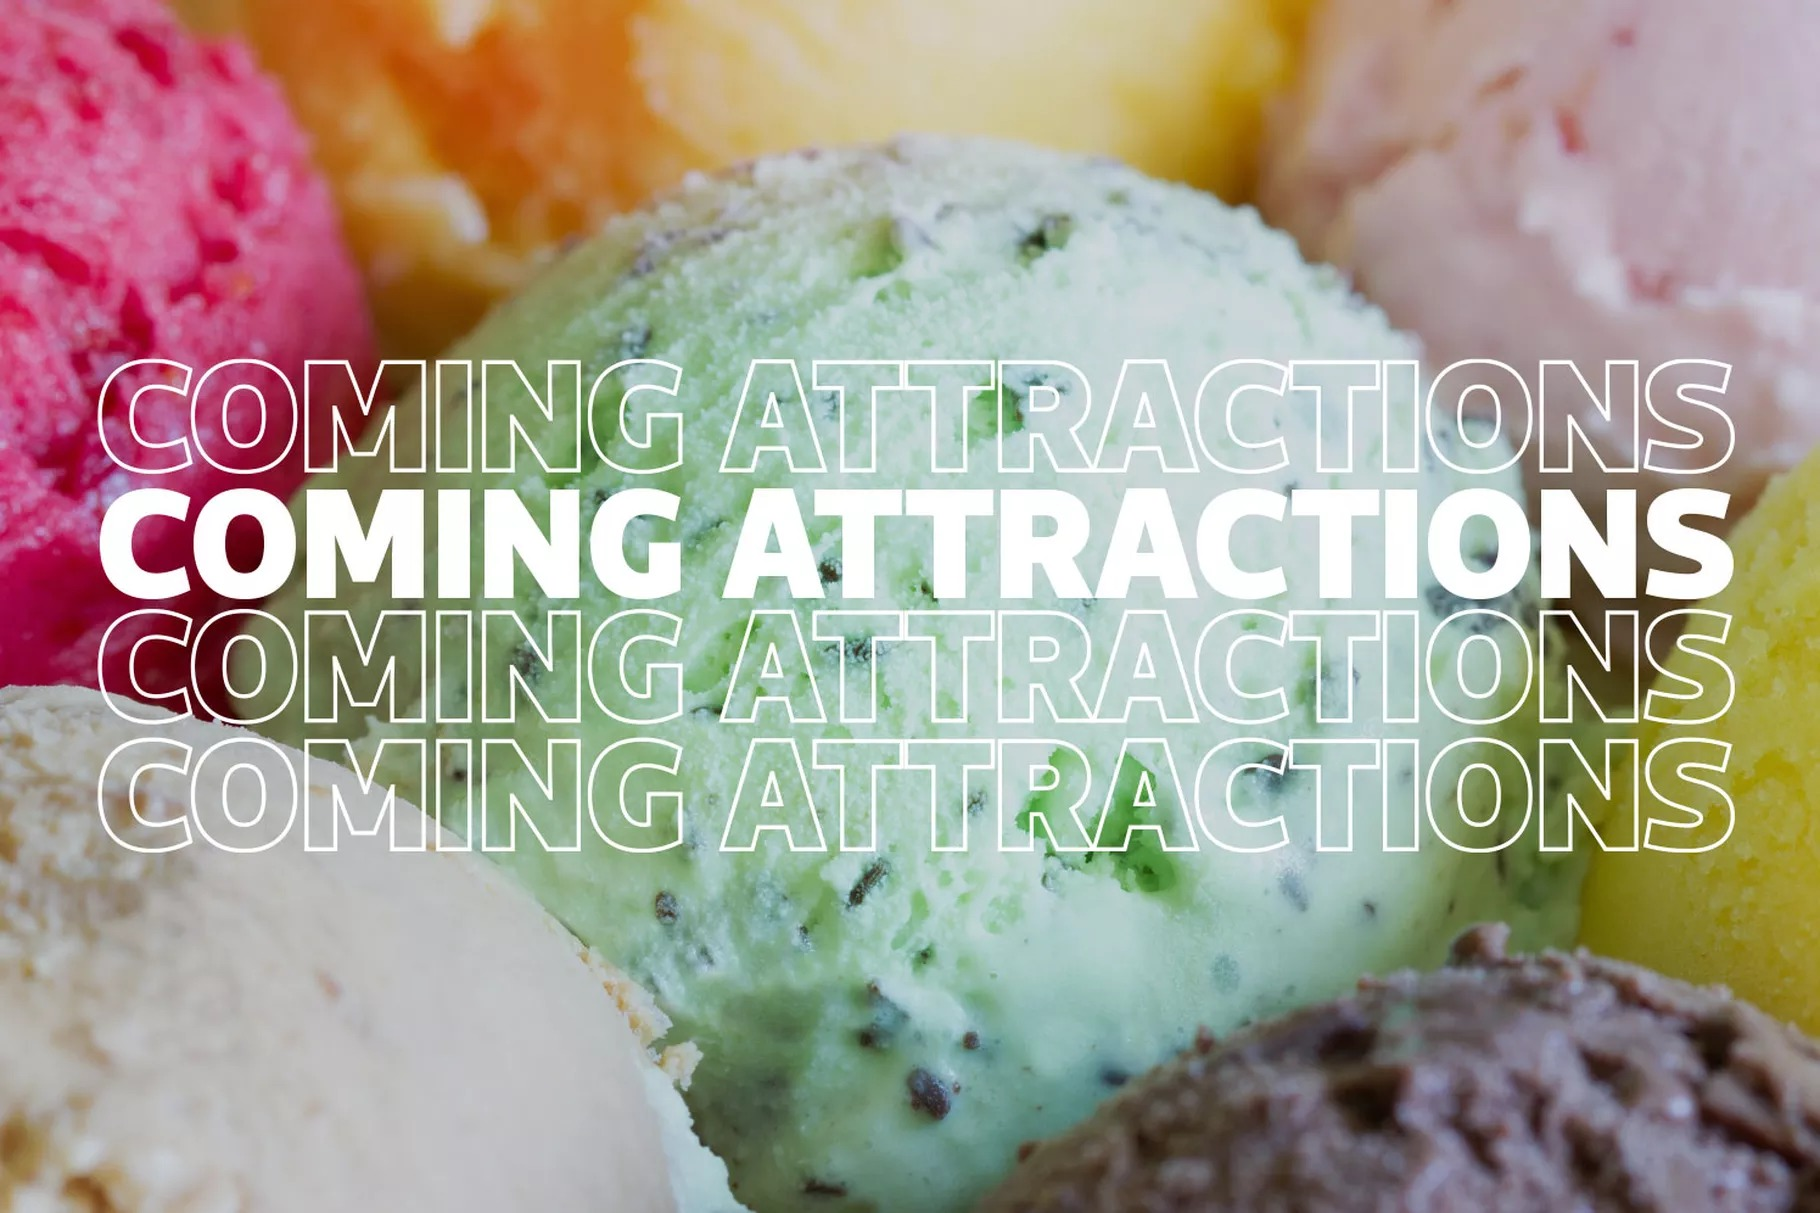 "A close-up photo of several scoops of colorful ice with the text ""Coming Attractions"" overlaid on top"